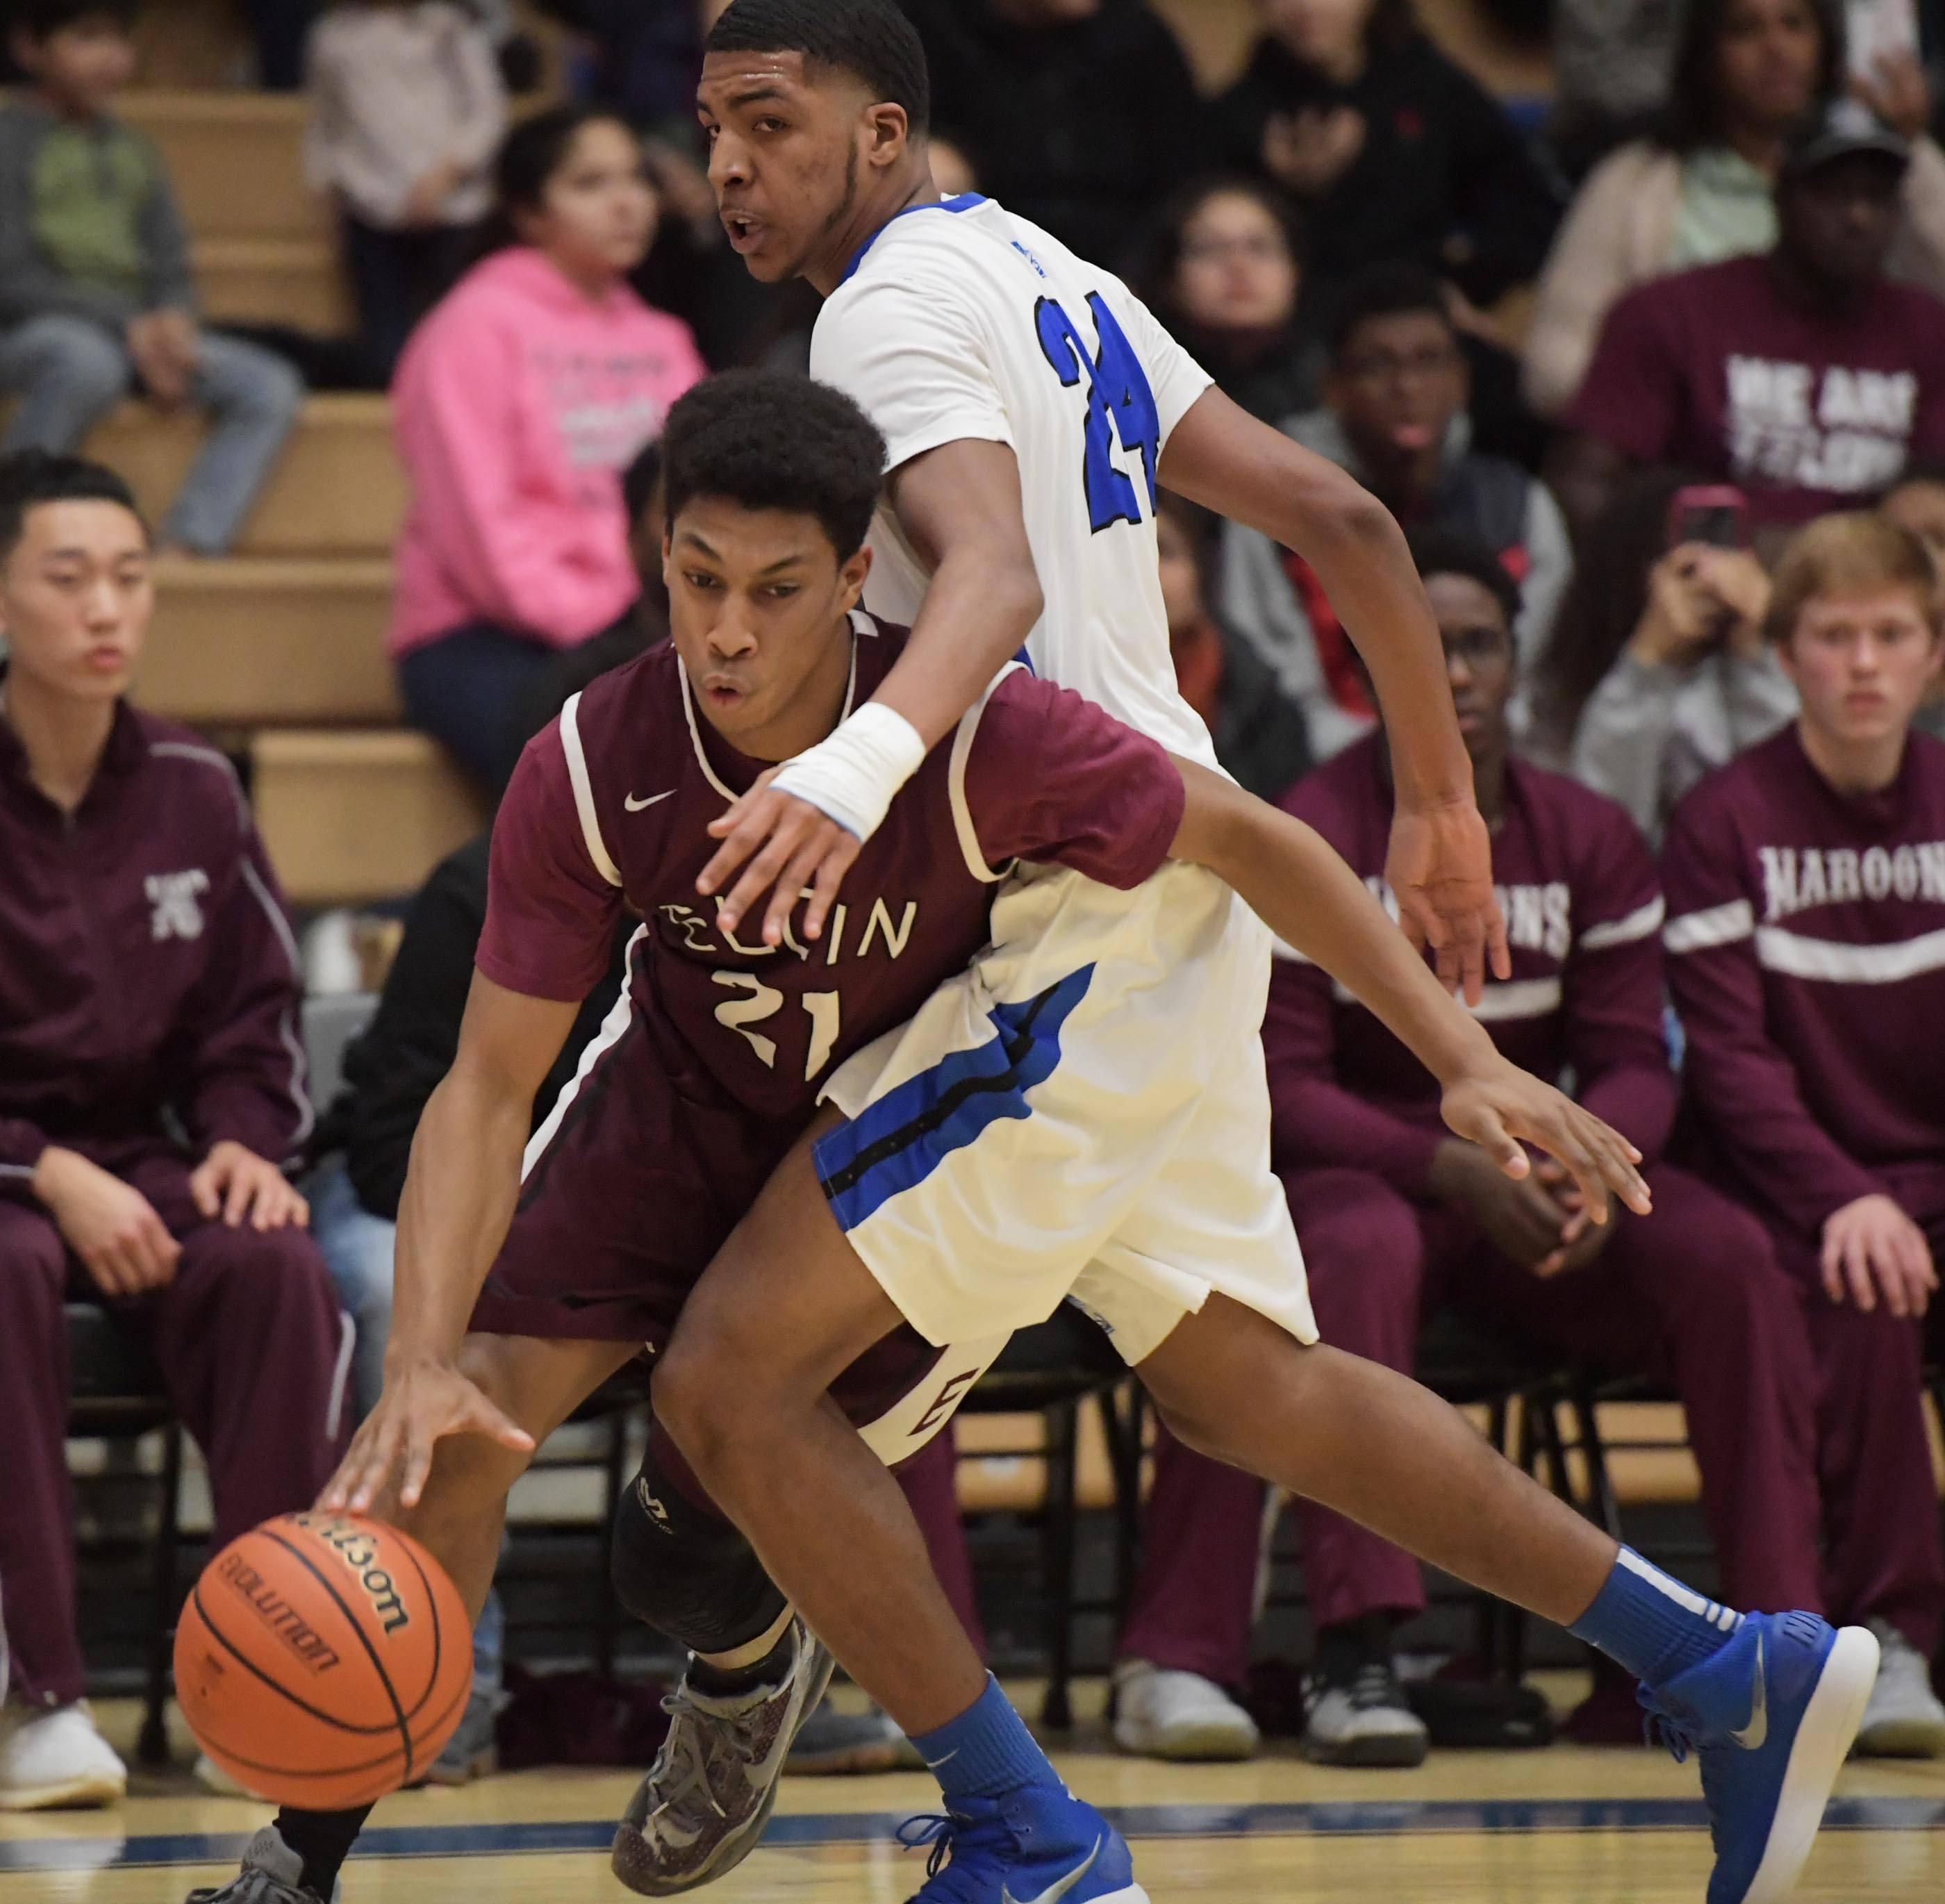 Elgin's Michael Weatherburn gets around Larkin's Isaiah Talley Tuesday in the St. Charles North boys basketball regional game.